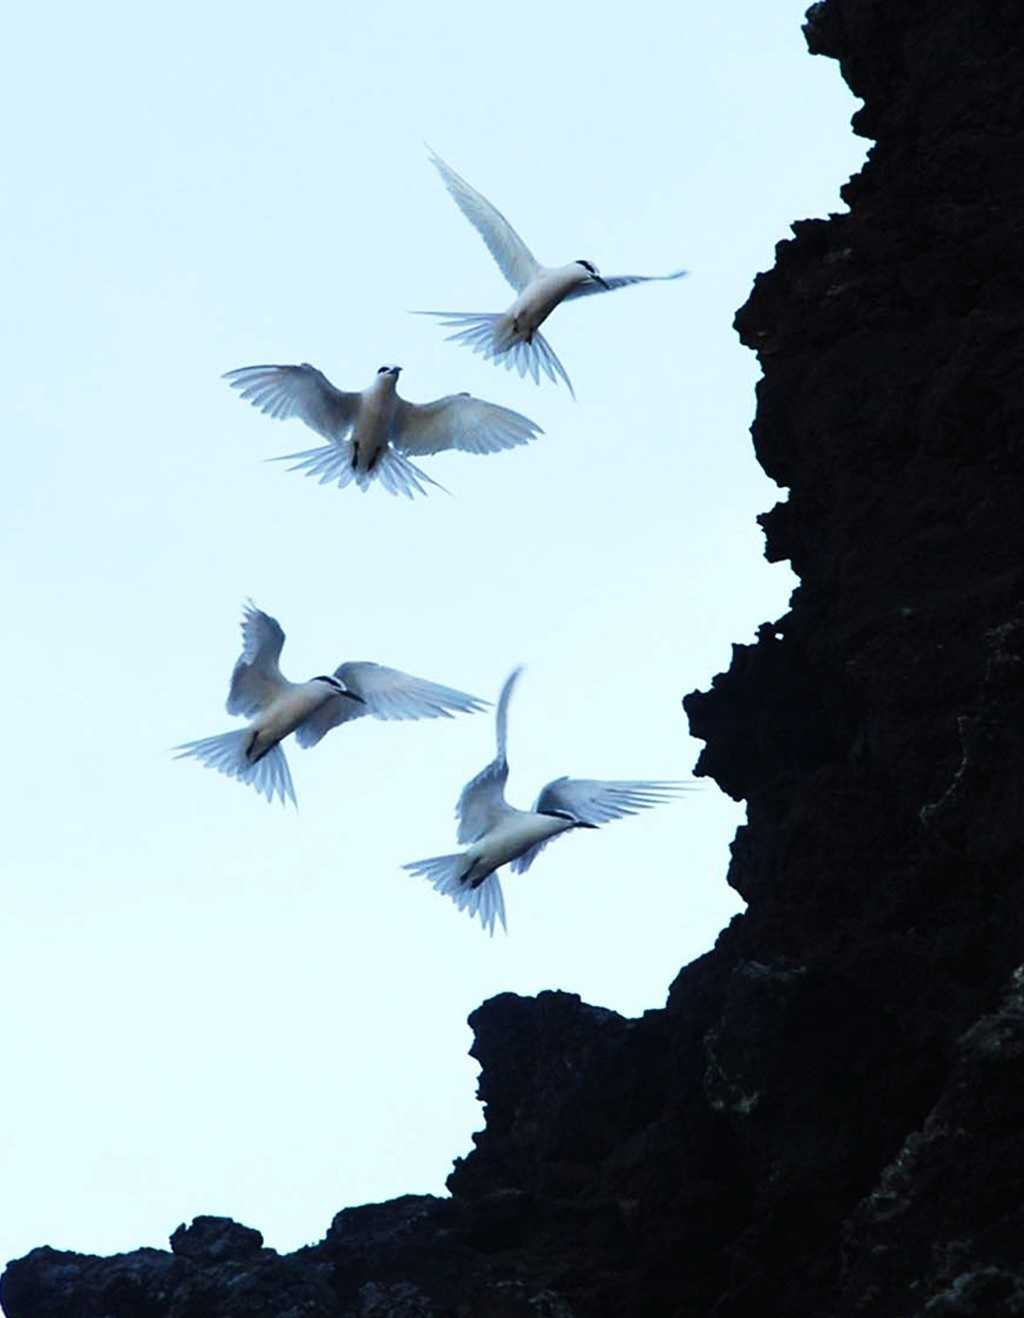 Seagulls are flying to their nests altogether.